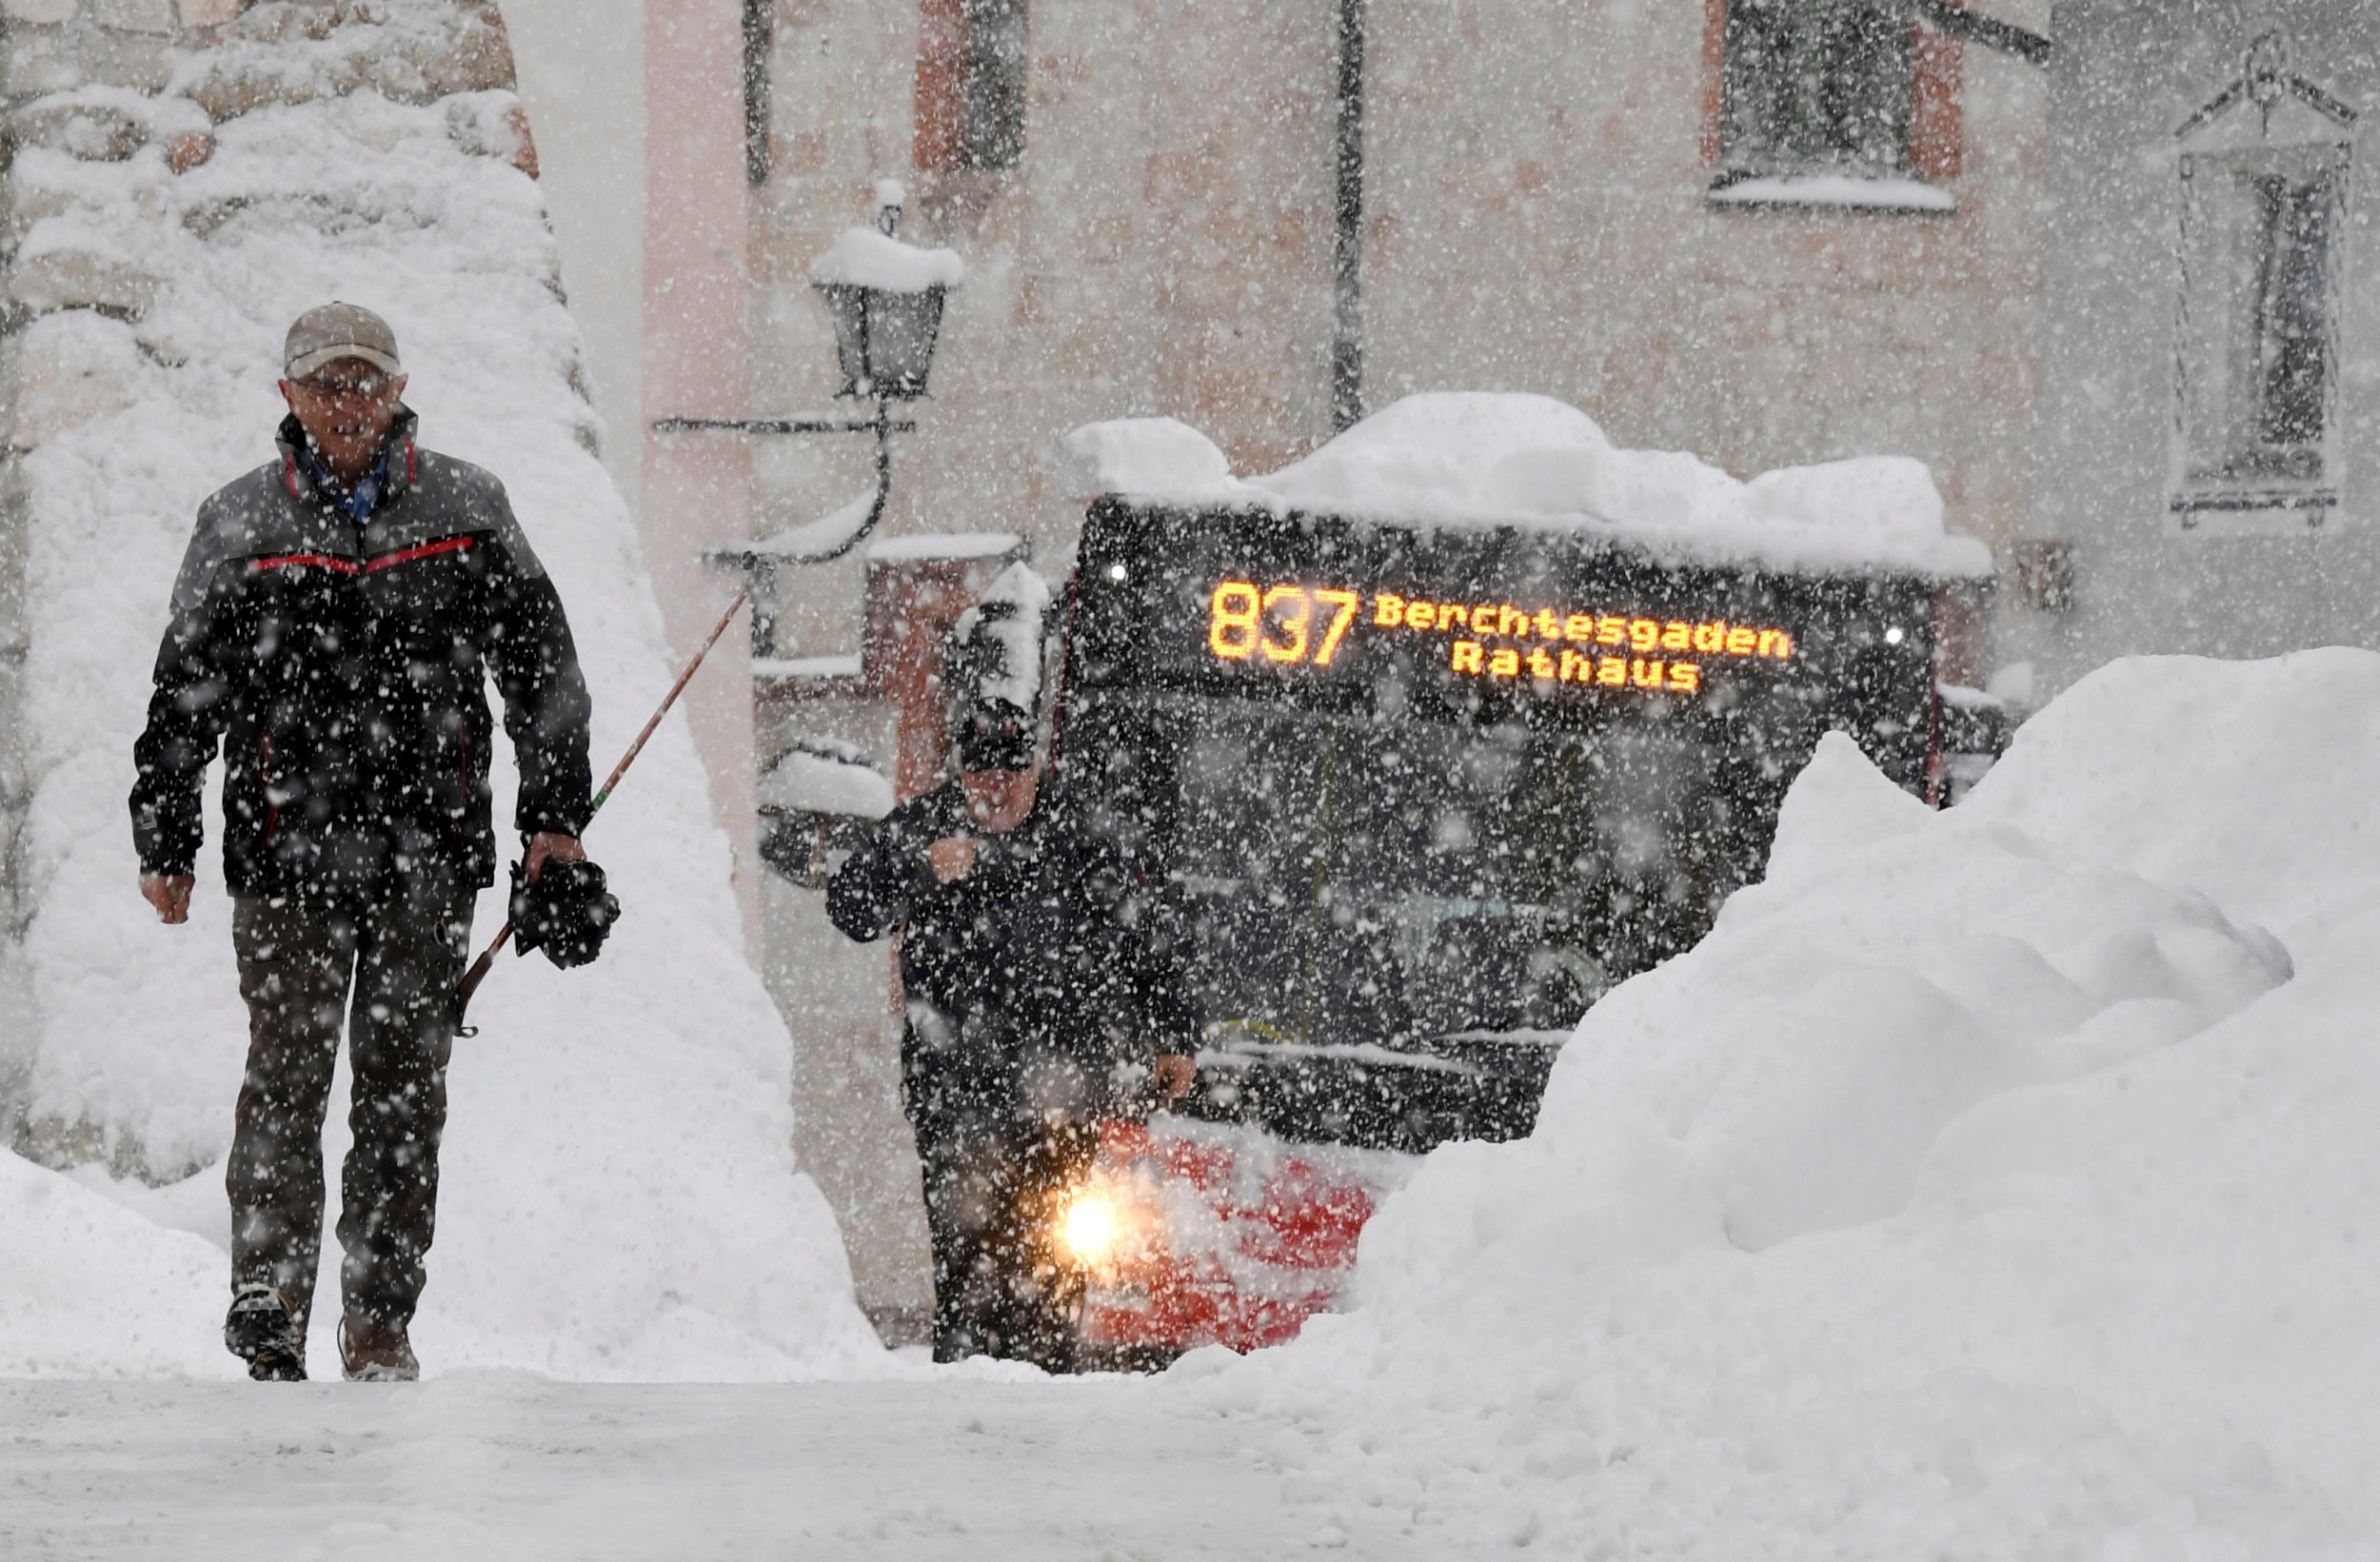 Austrian armed forces find clever way to clear snow from